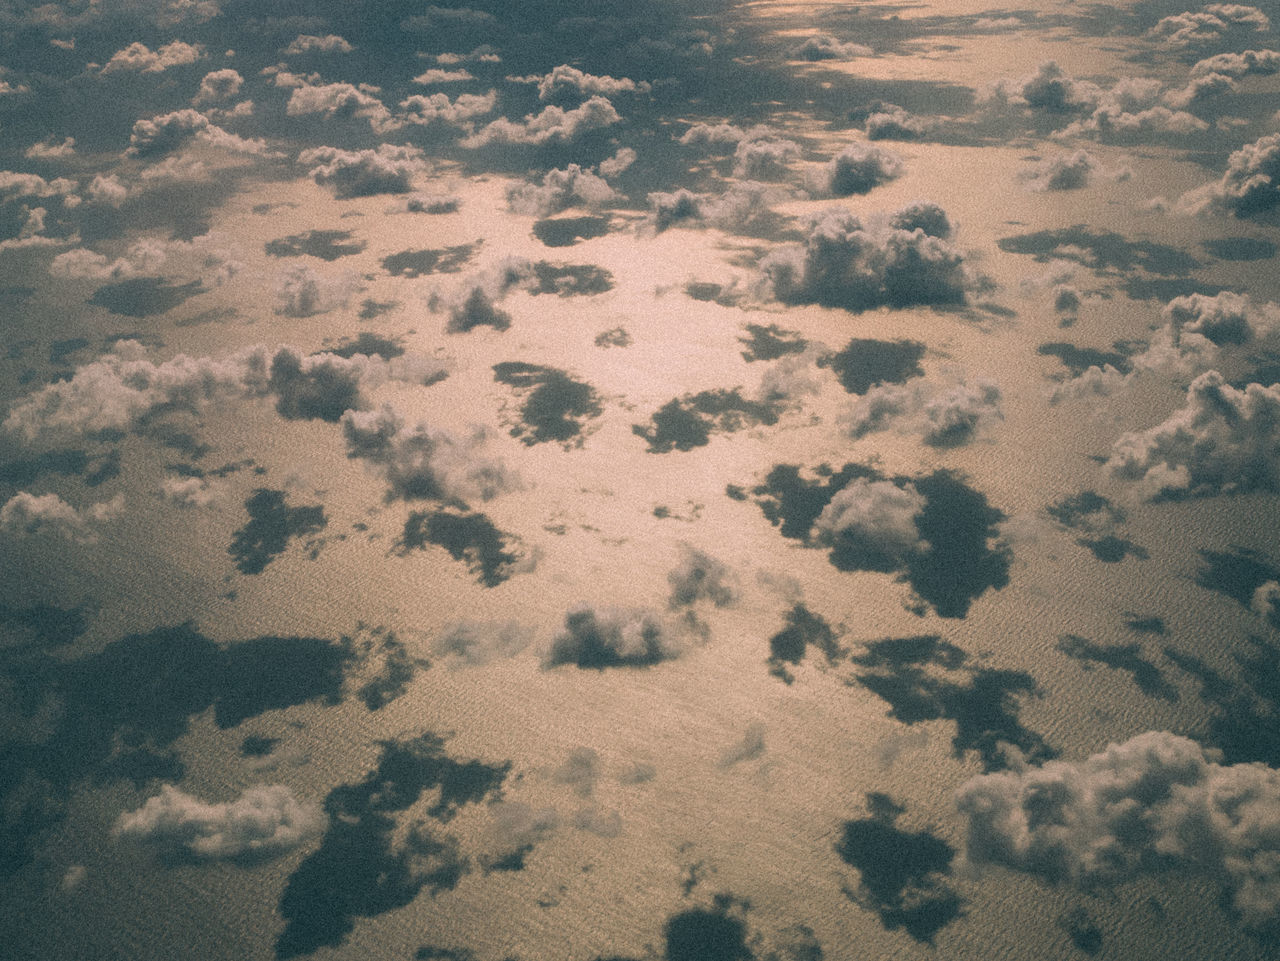 High Angle View of Clouds Against Sea